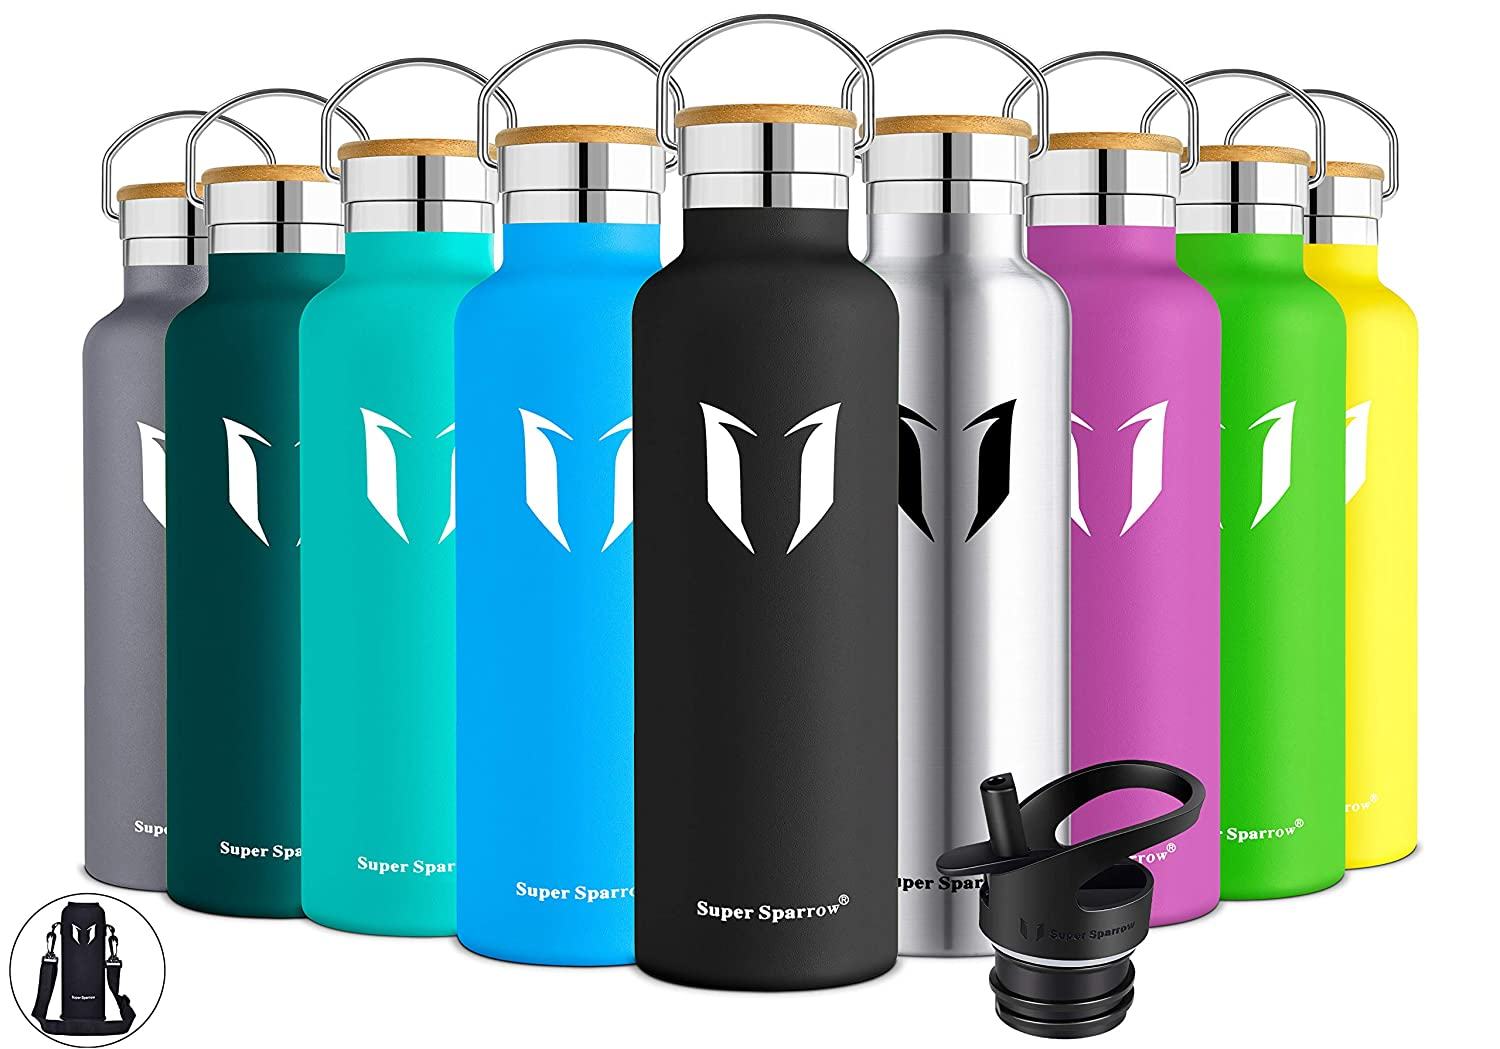 f9d5809754 Super Sparrow Stainless Steel Vacuum Insulated Water Bottle - Double Wall  Design - Standard Mouth - 350ml & 500ml & 620ml & 750ml & 1000ml -  Non-Toxic BPA ...